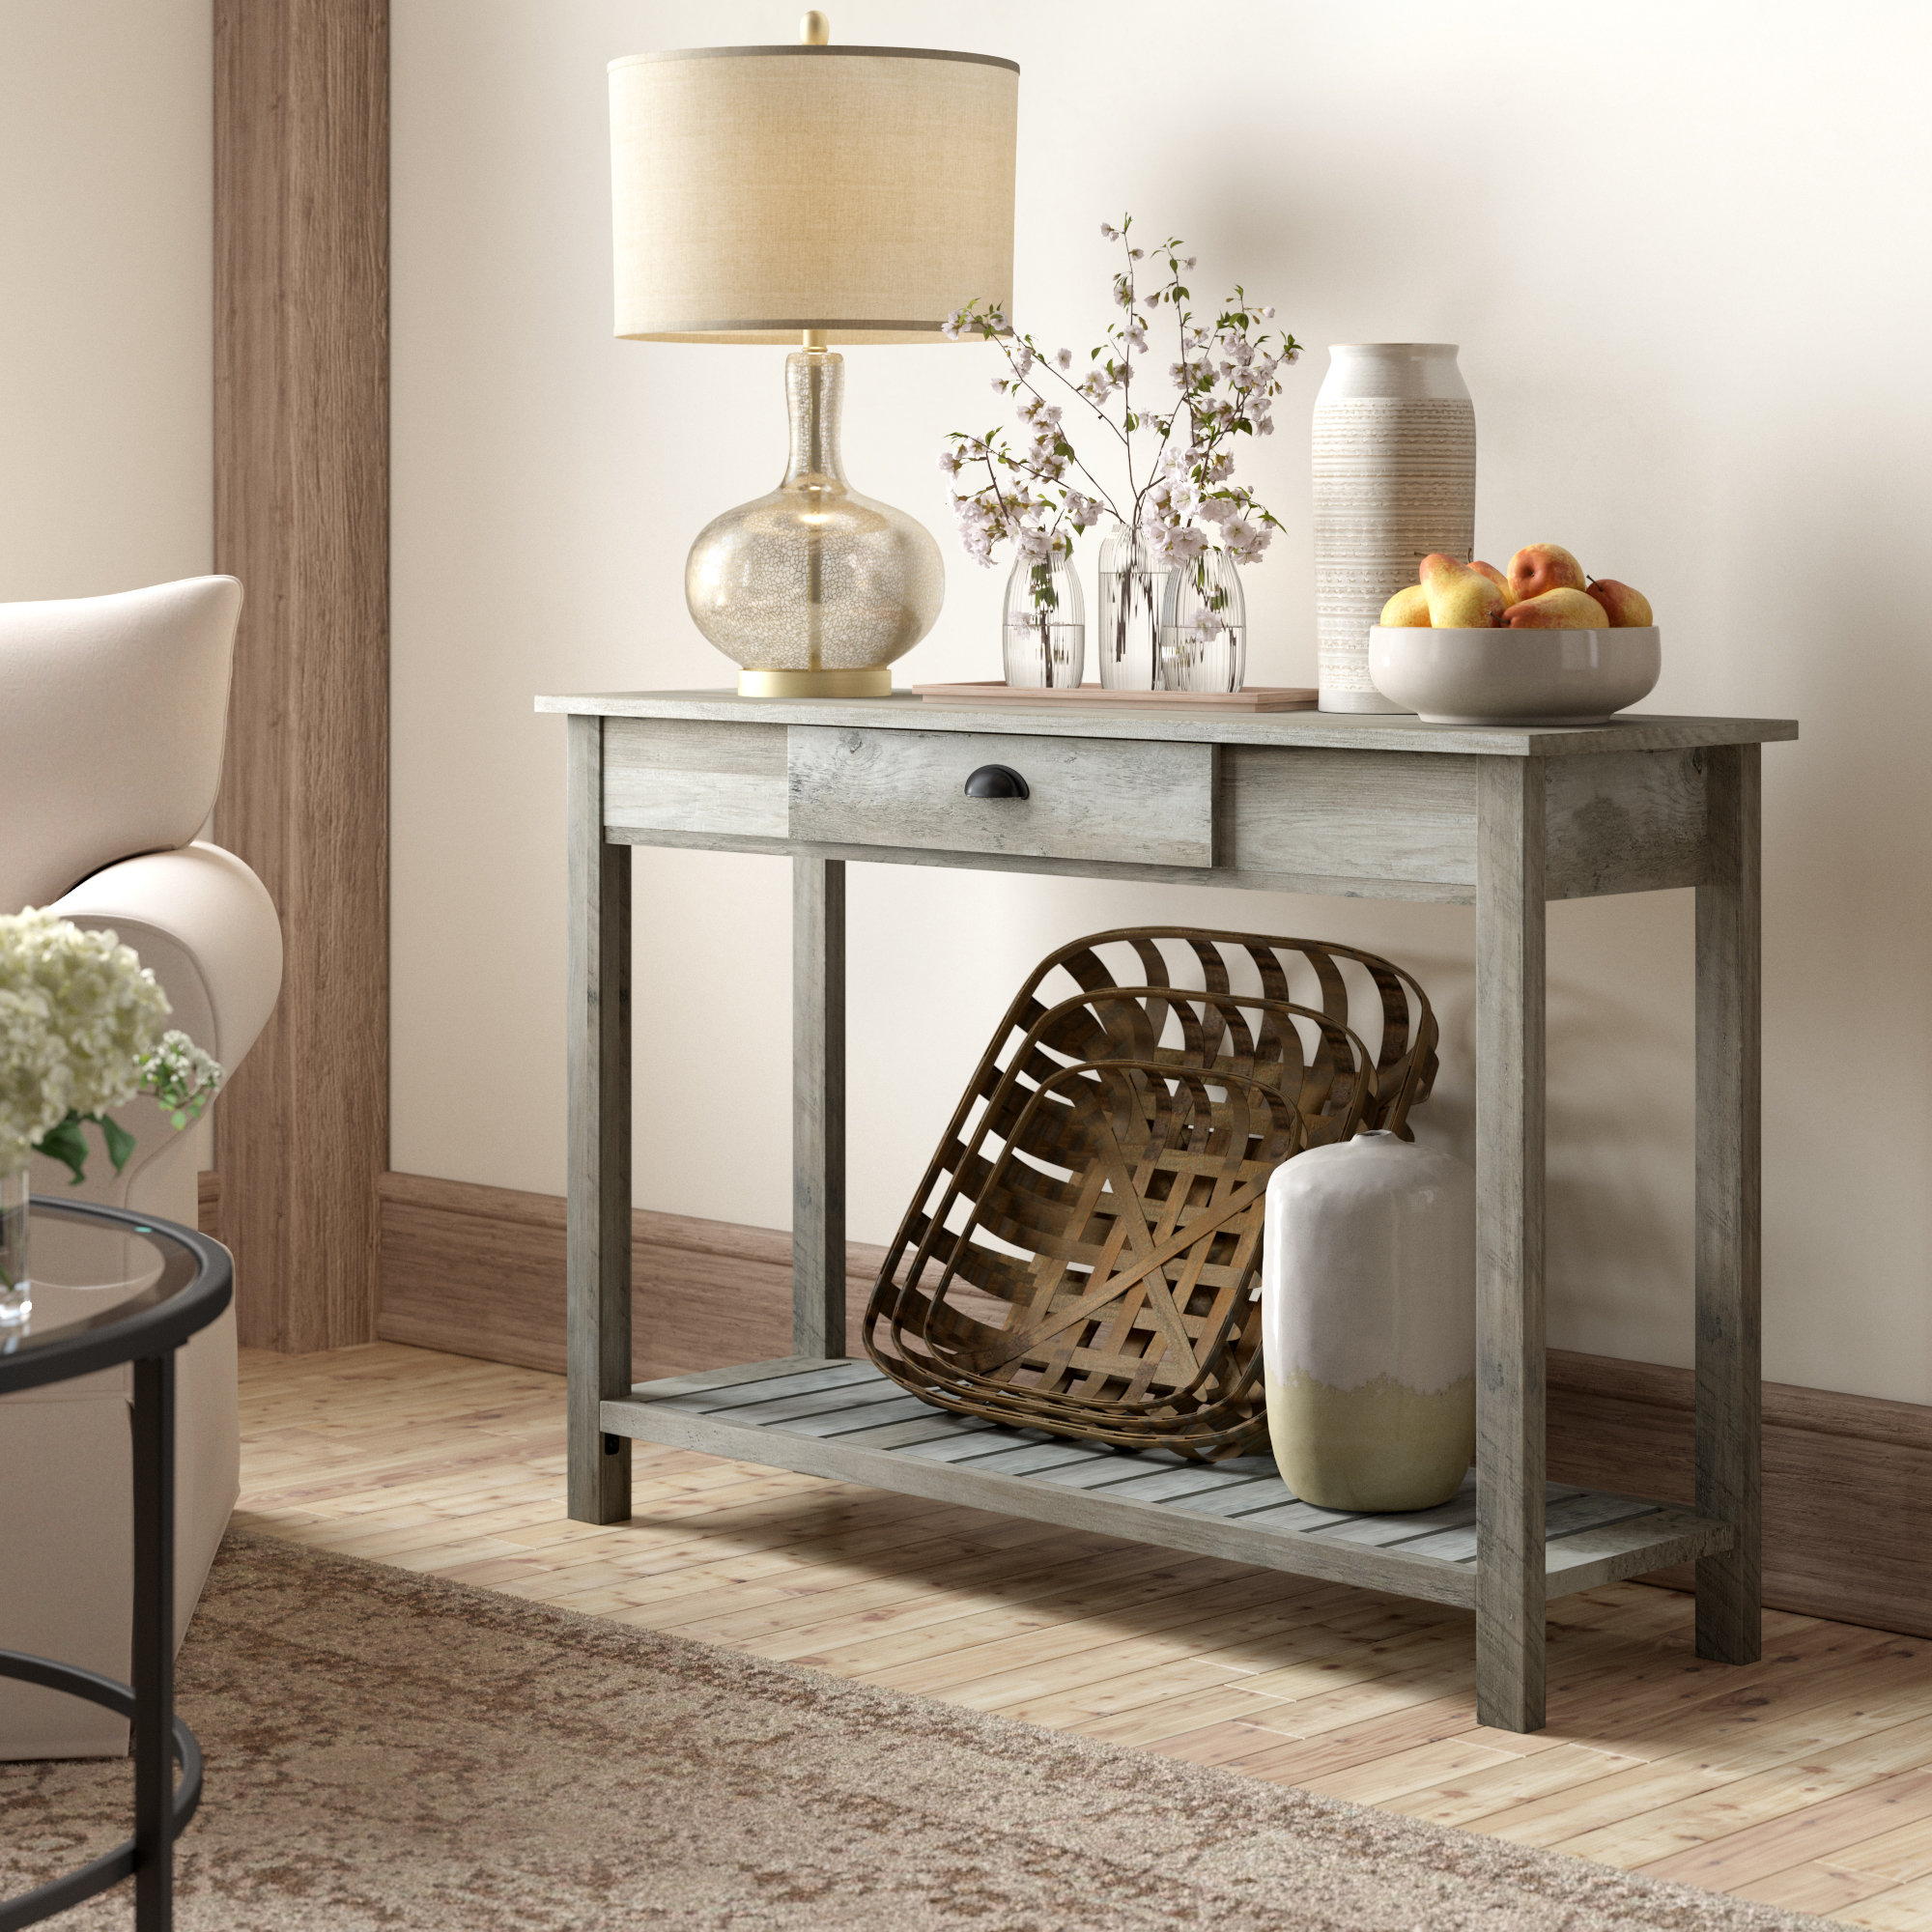 8 Inch Deep Console Table | Wayfair pertaining to Oscar 60 Inch Console Tables (Image 1 of 30)